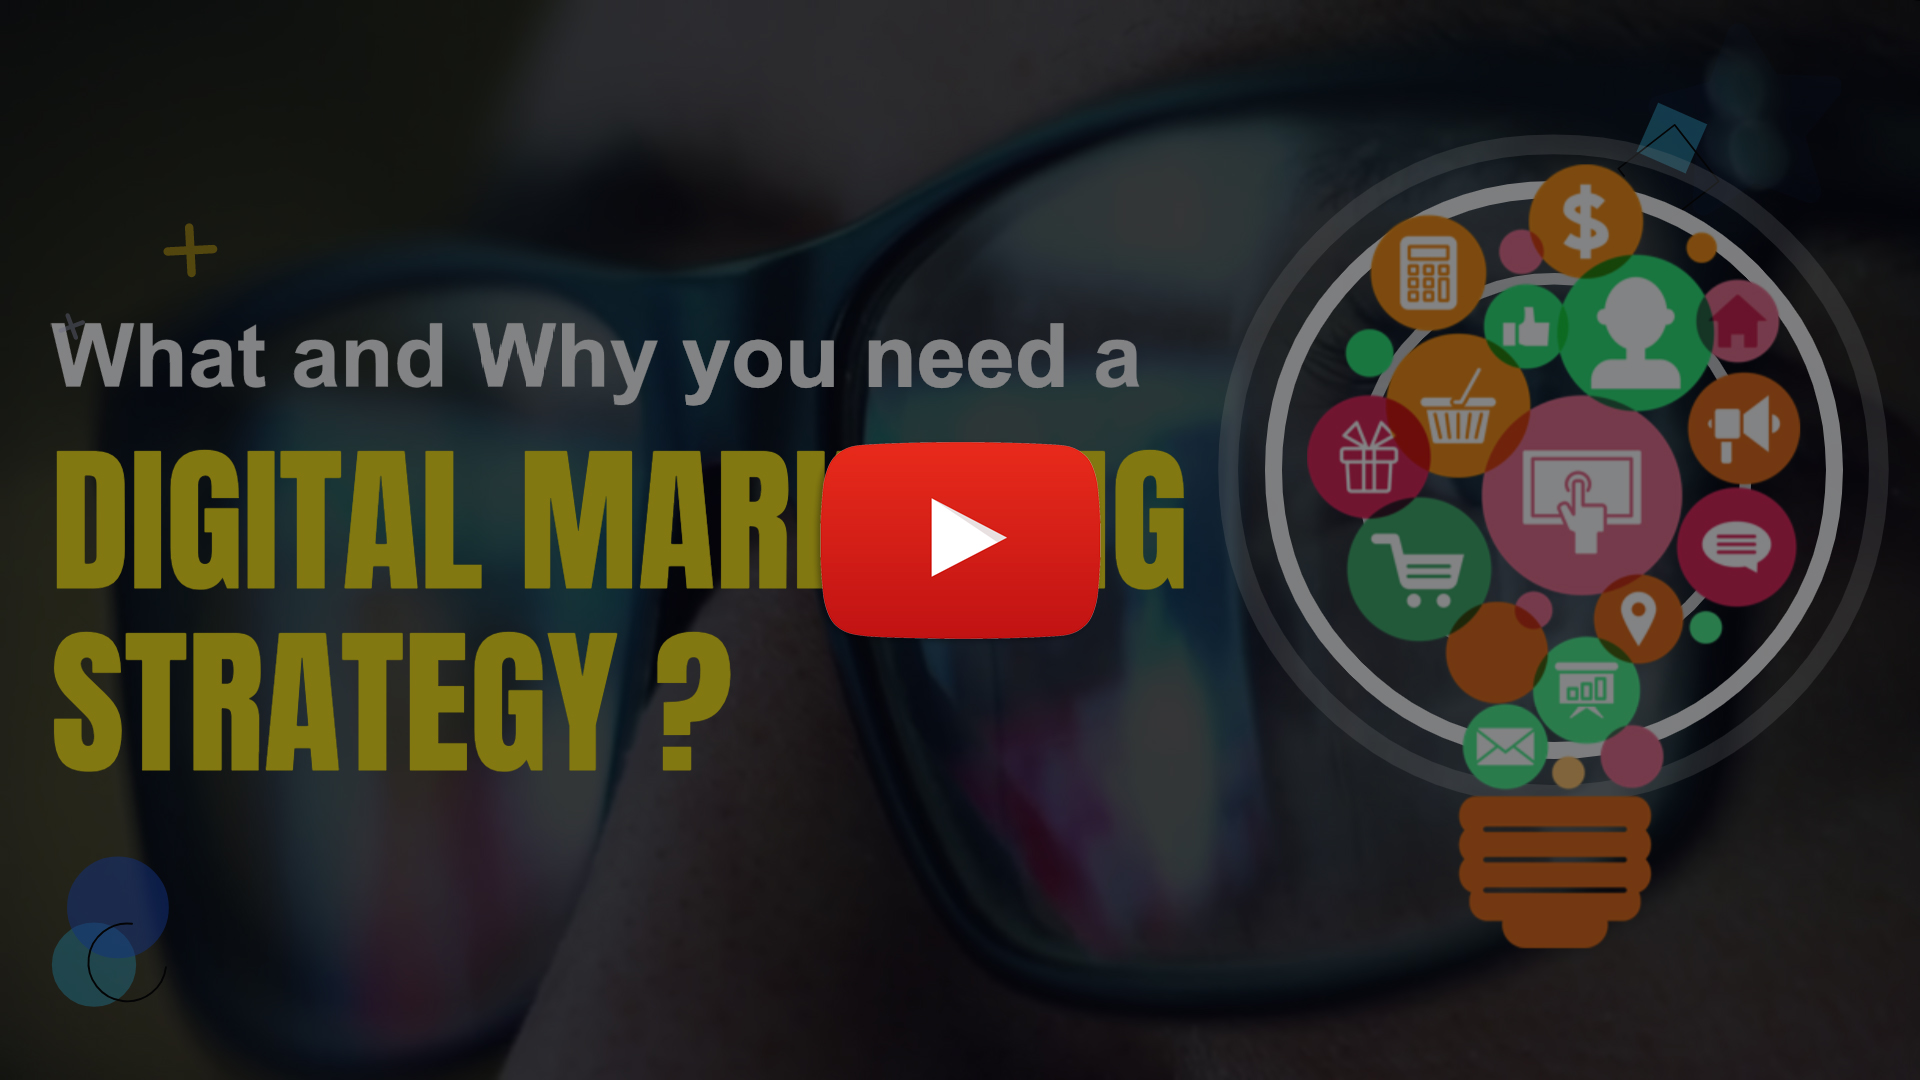 Digital-marketing-strategy-yt